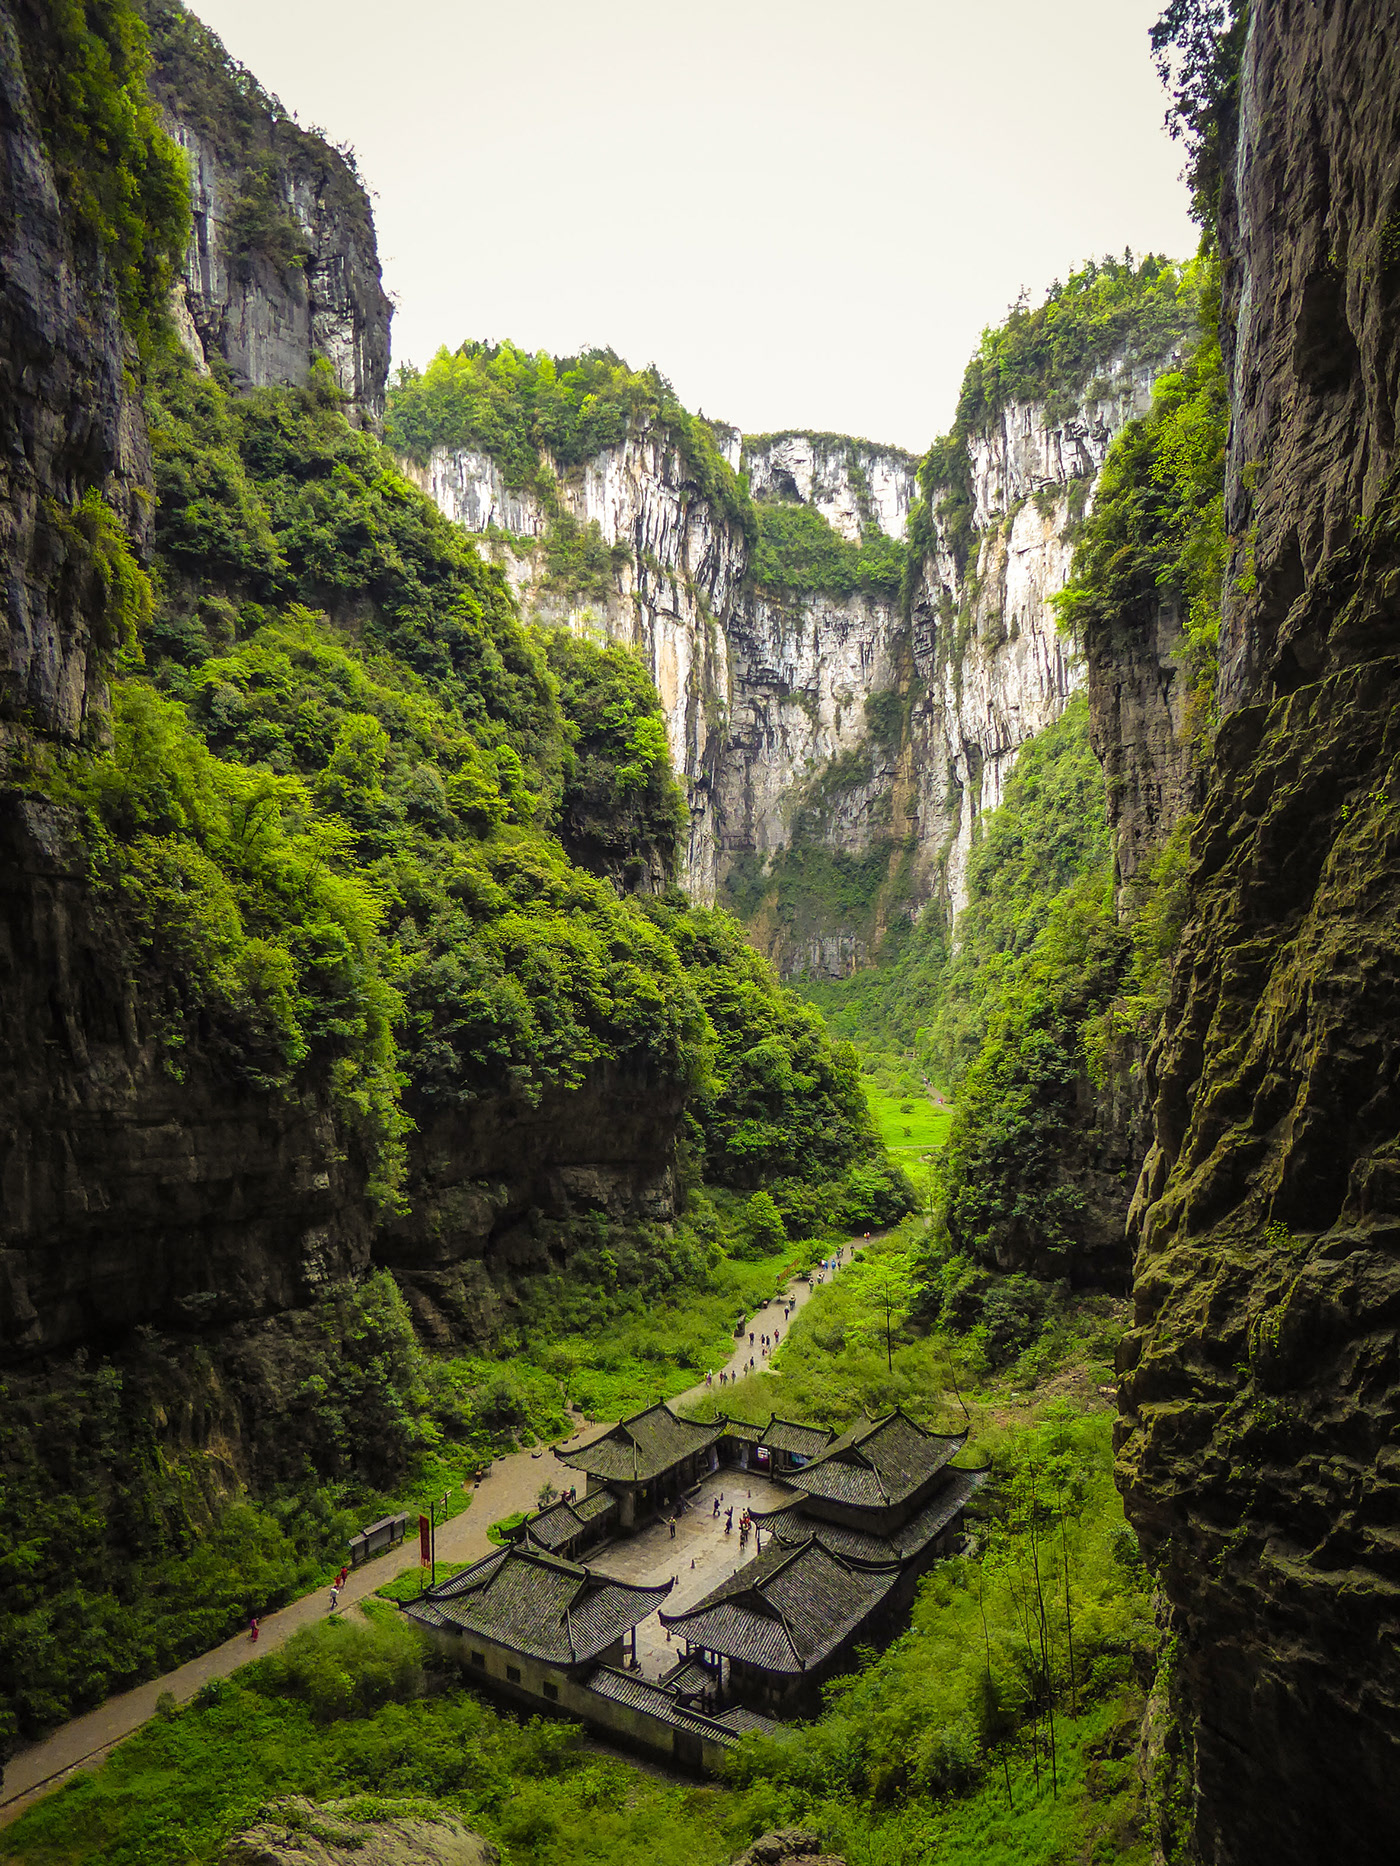 Wulong karst Chongqing China